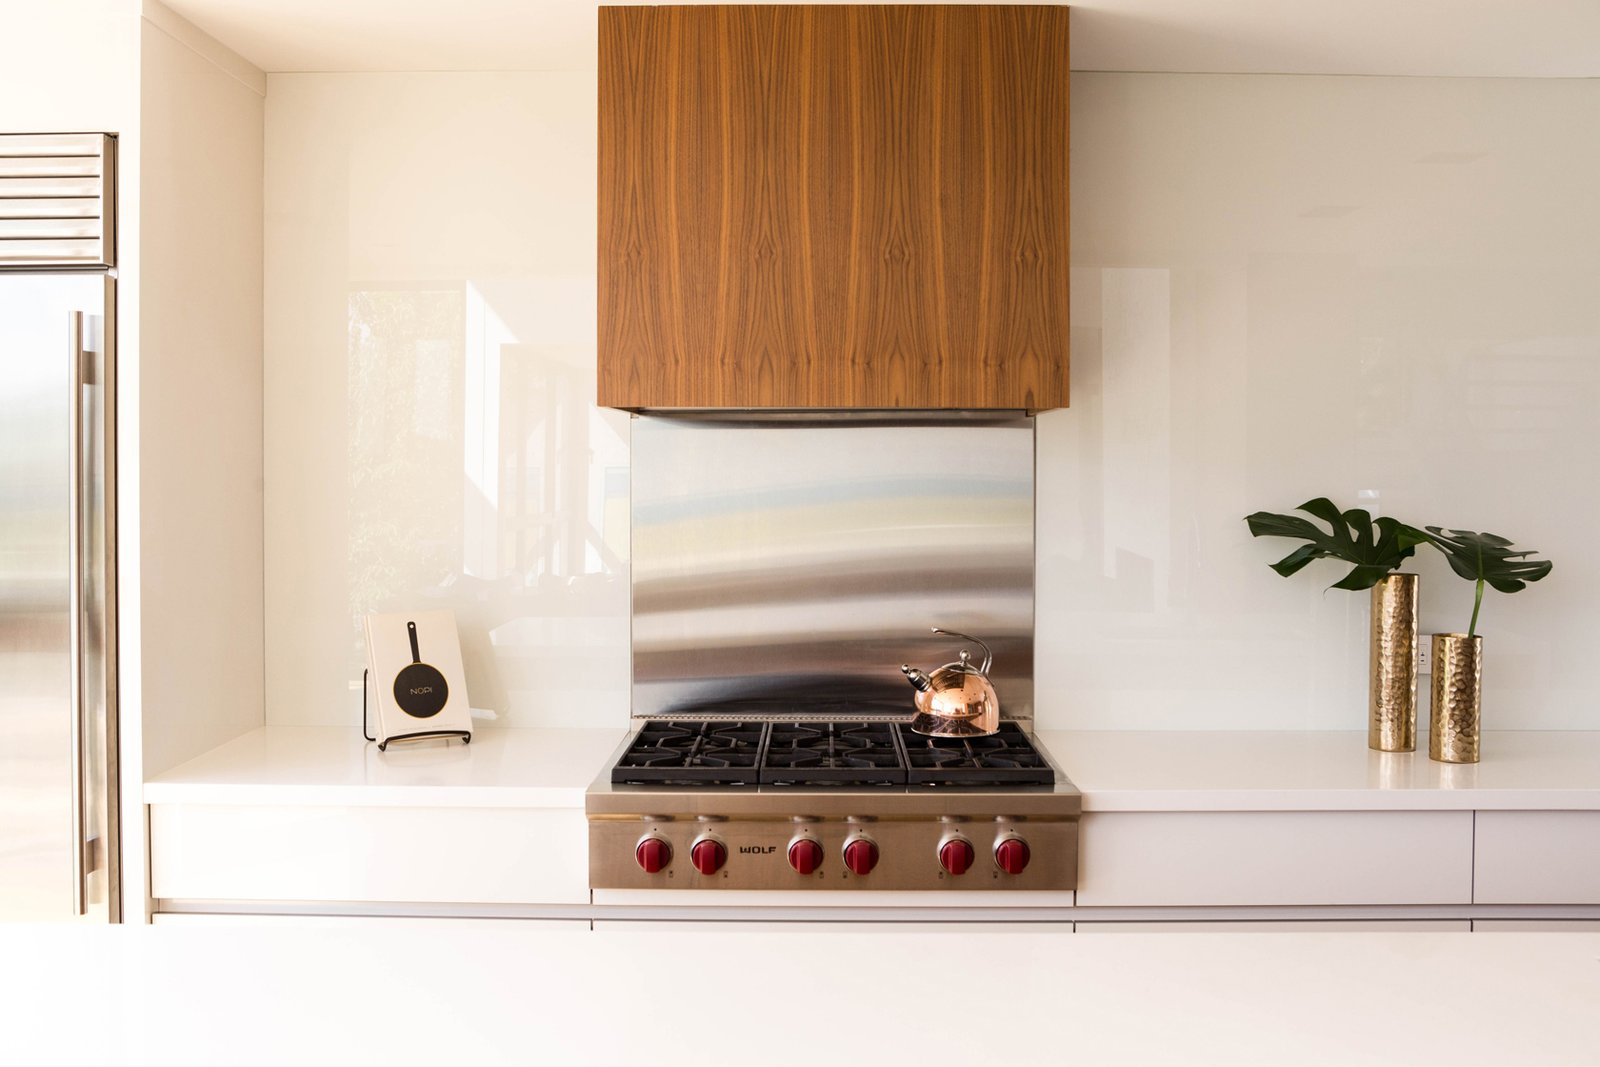 The Sub-Zero and Wolf appliances, which include a fridge, cook top, and a wall oven, were selected for both their performance capabilities, as well as their aesthetic appeal, which suited the contemporary design of the kitchen.